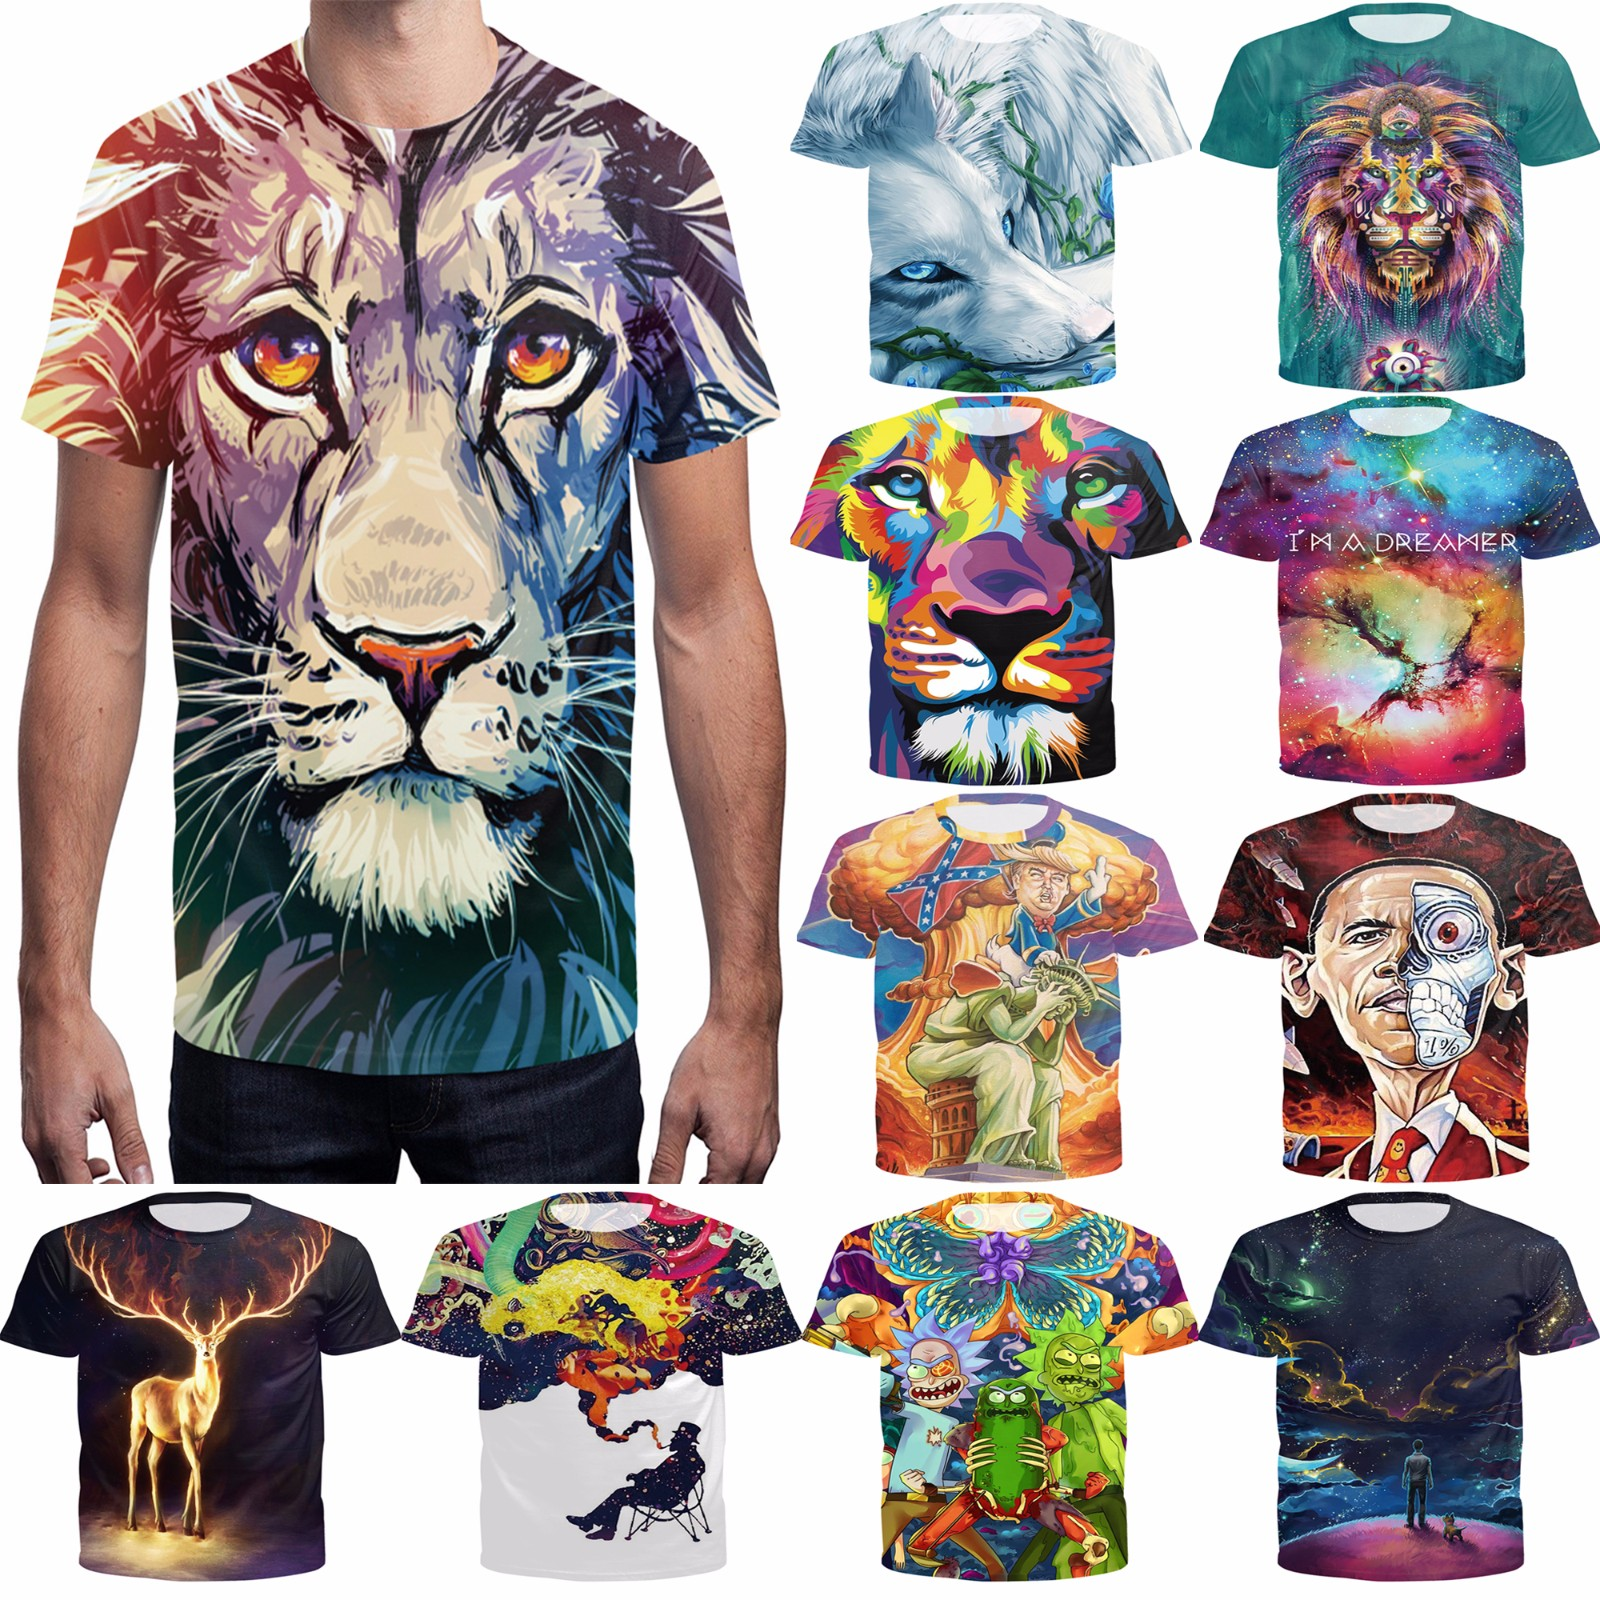 a8f4738887ce Men's 3D Print Animal T-shirts Fitness Short Sleeve shirts Casual Tops Tee